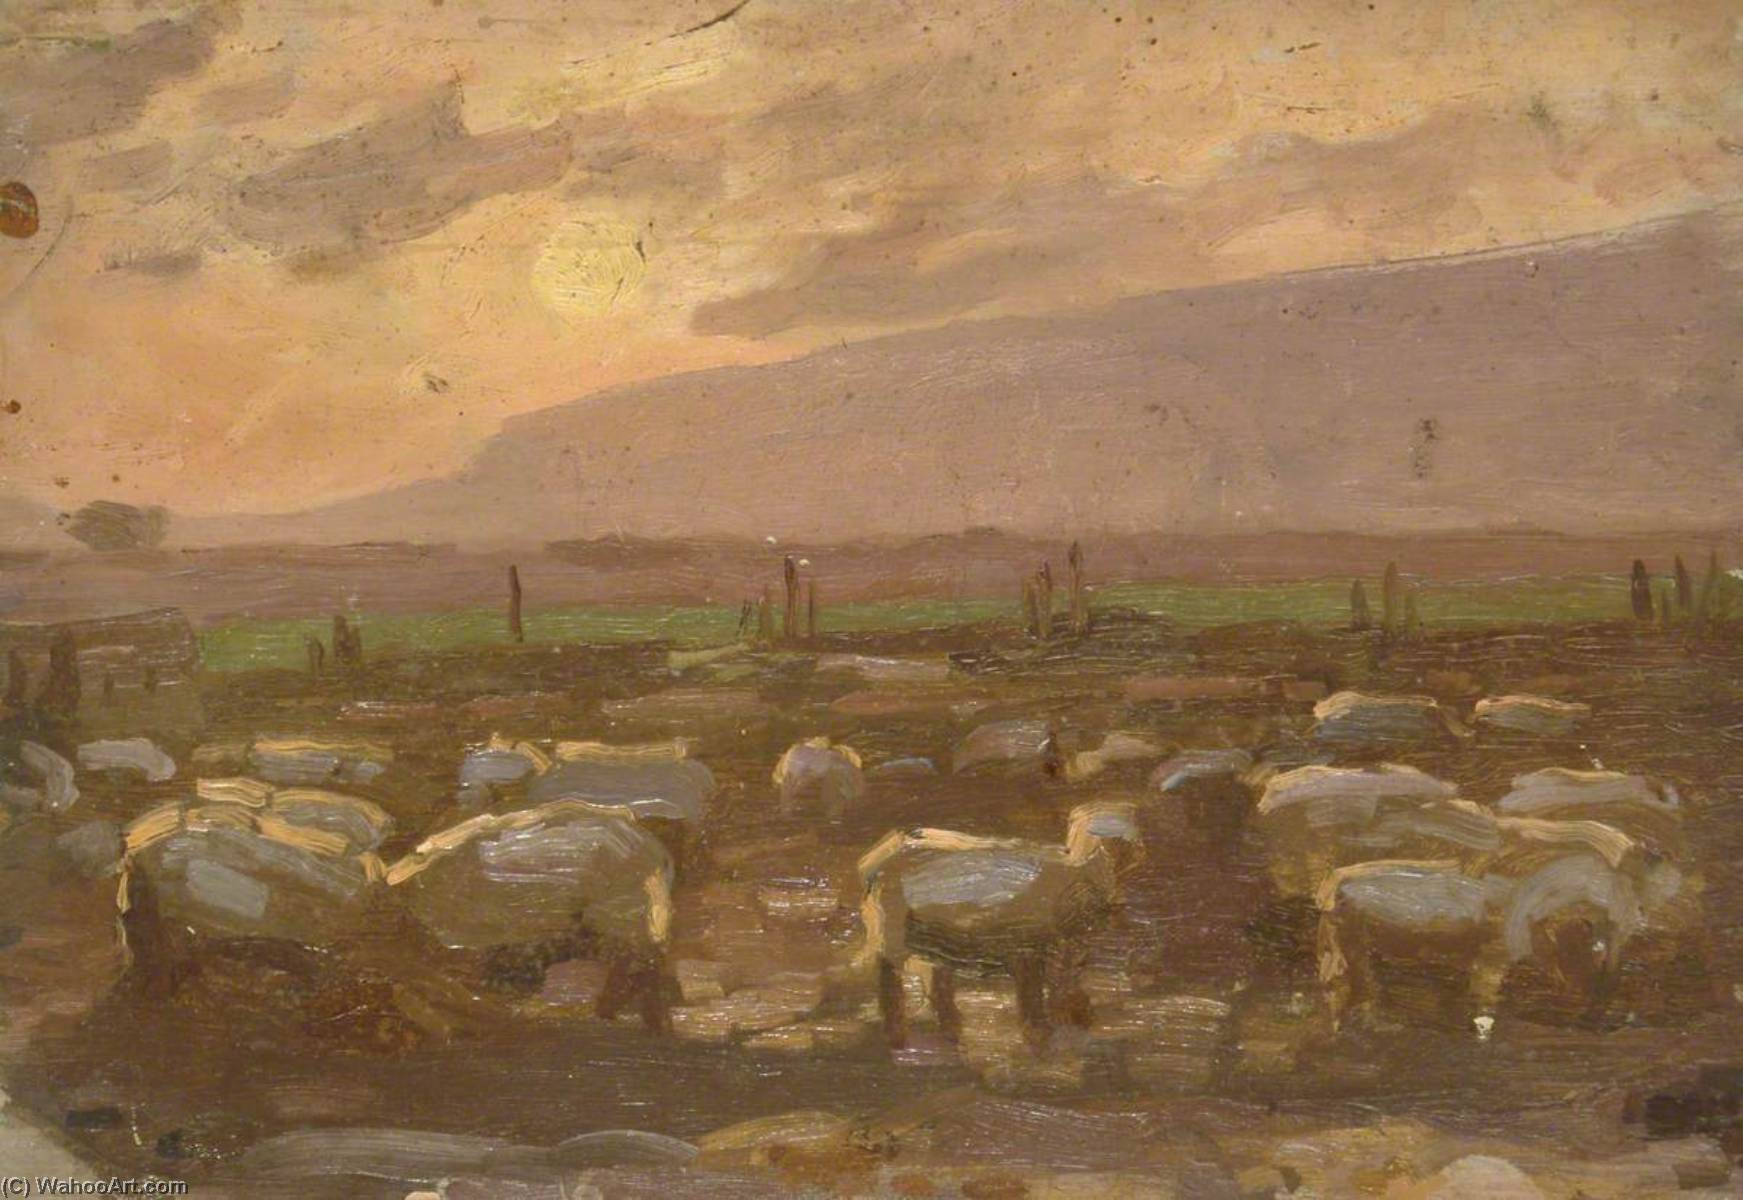 Flock of Sheep in Sunset, Oil On Panel by Gunning King